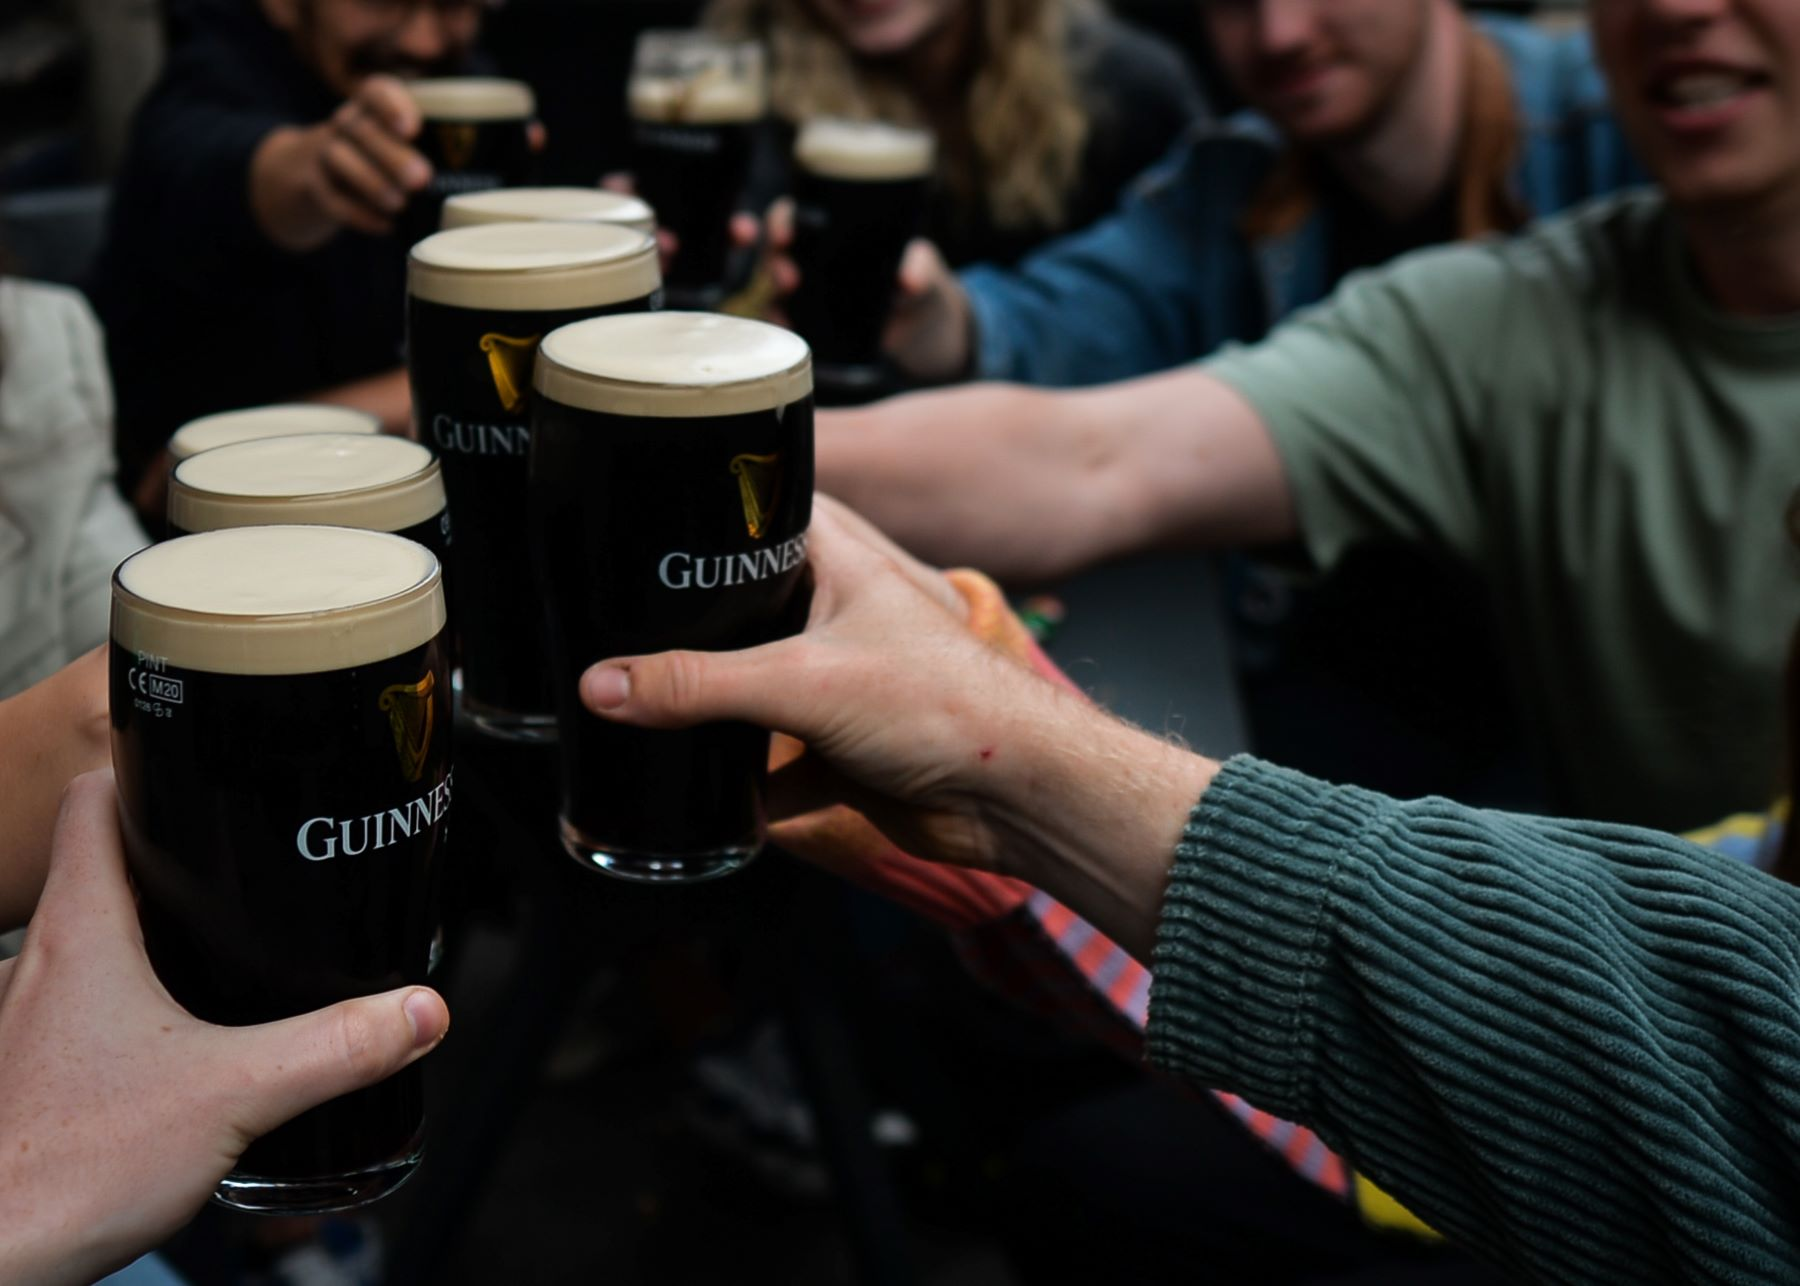 A group of friends drinking Guinness beer in a pub in Dublin, Ireland